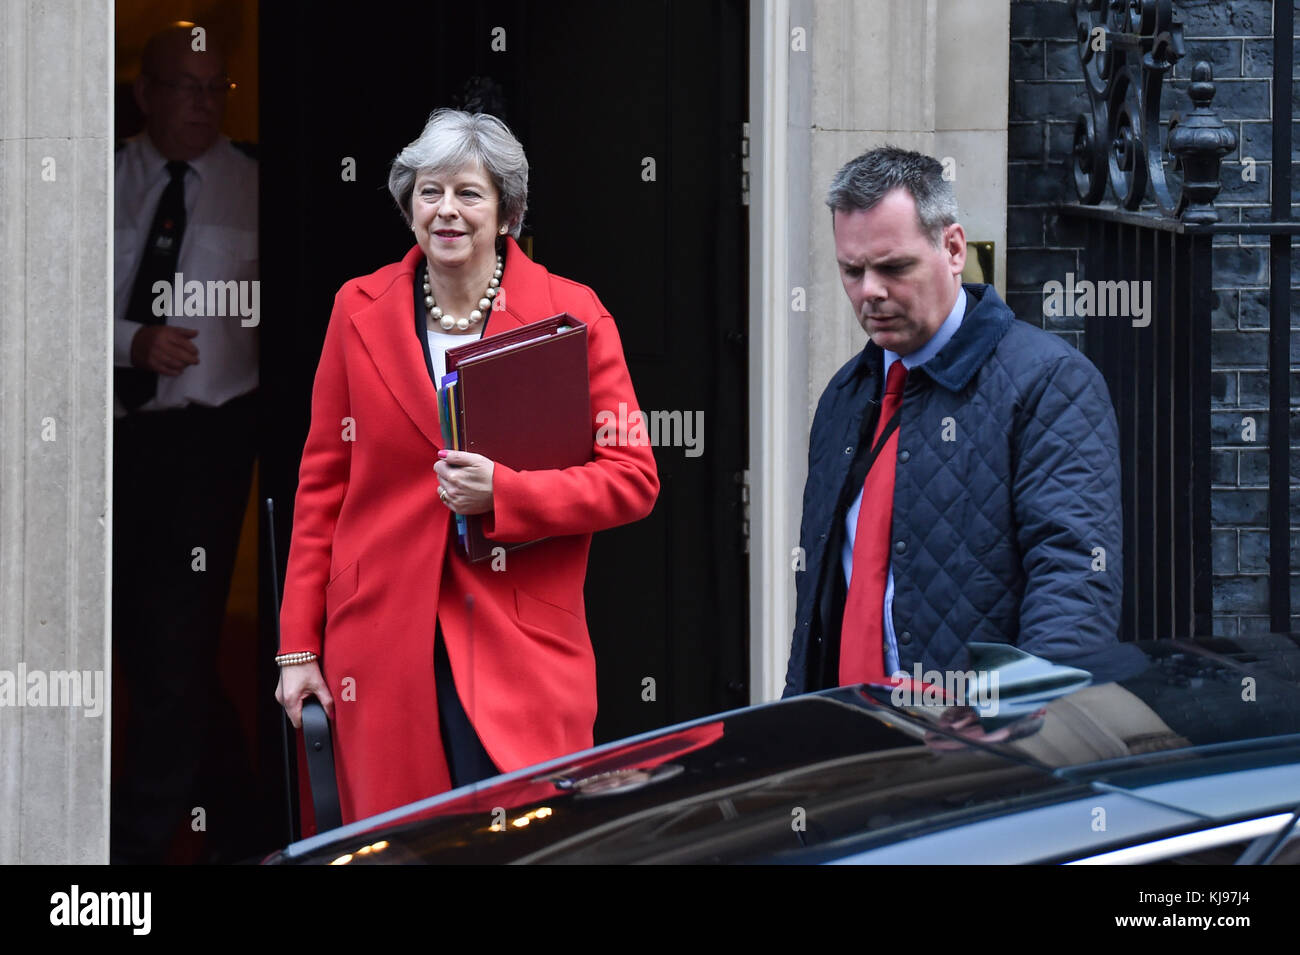 London, United Kingdom. 22th November 2017. Prime Minister Theresa May leaves 10 Downing Street bound for the House - Stock Image